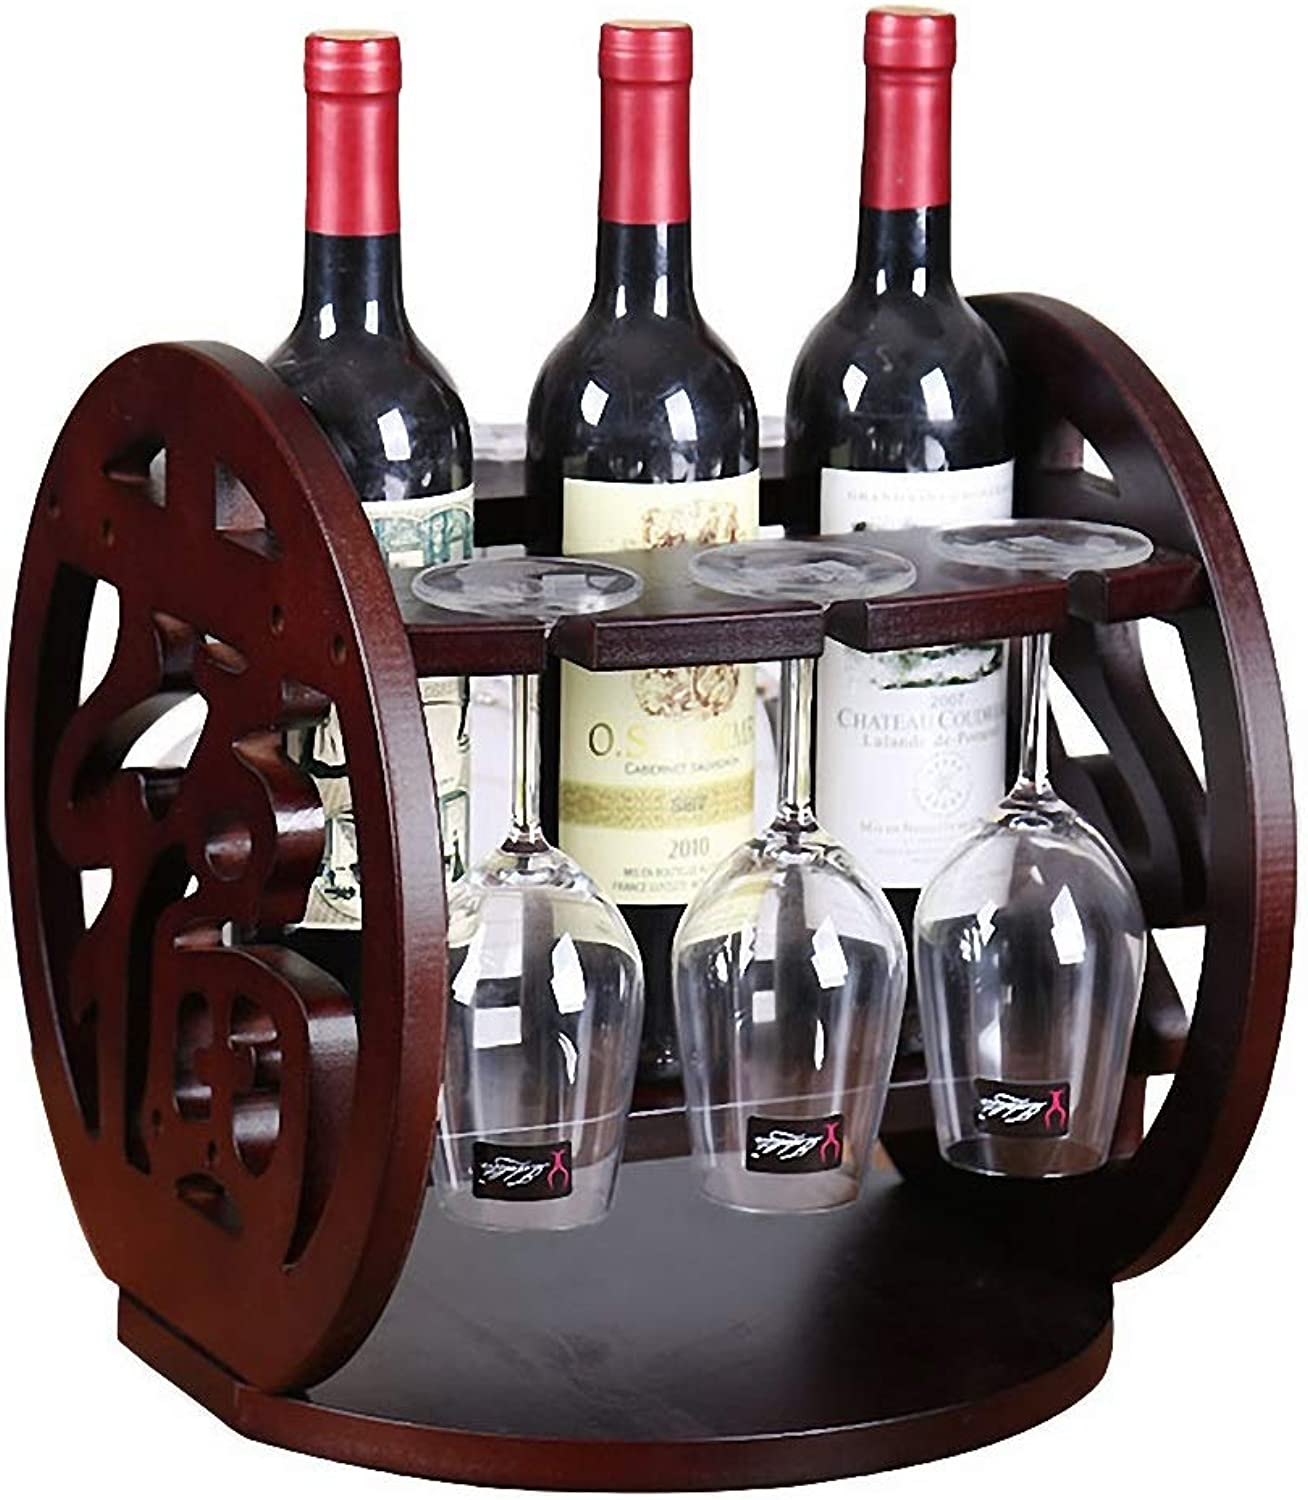 Family Portrait Wine Rack Wooden Wine Rack Wine Display Stand Wine Glass Rack Upside Down Wine Glass Holder Hanging Wine Rack Wine Glass Holder Family